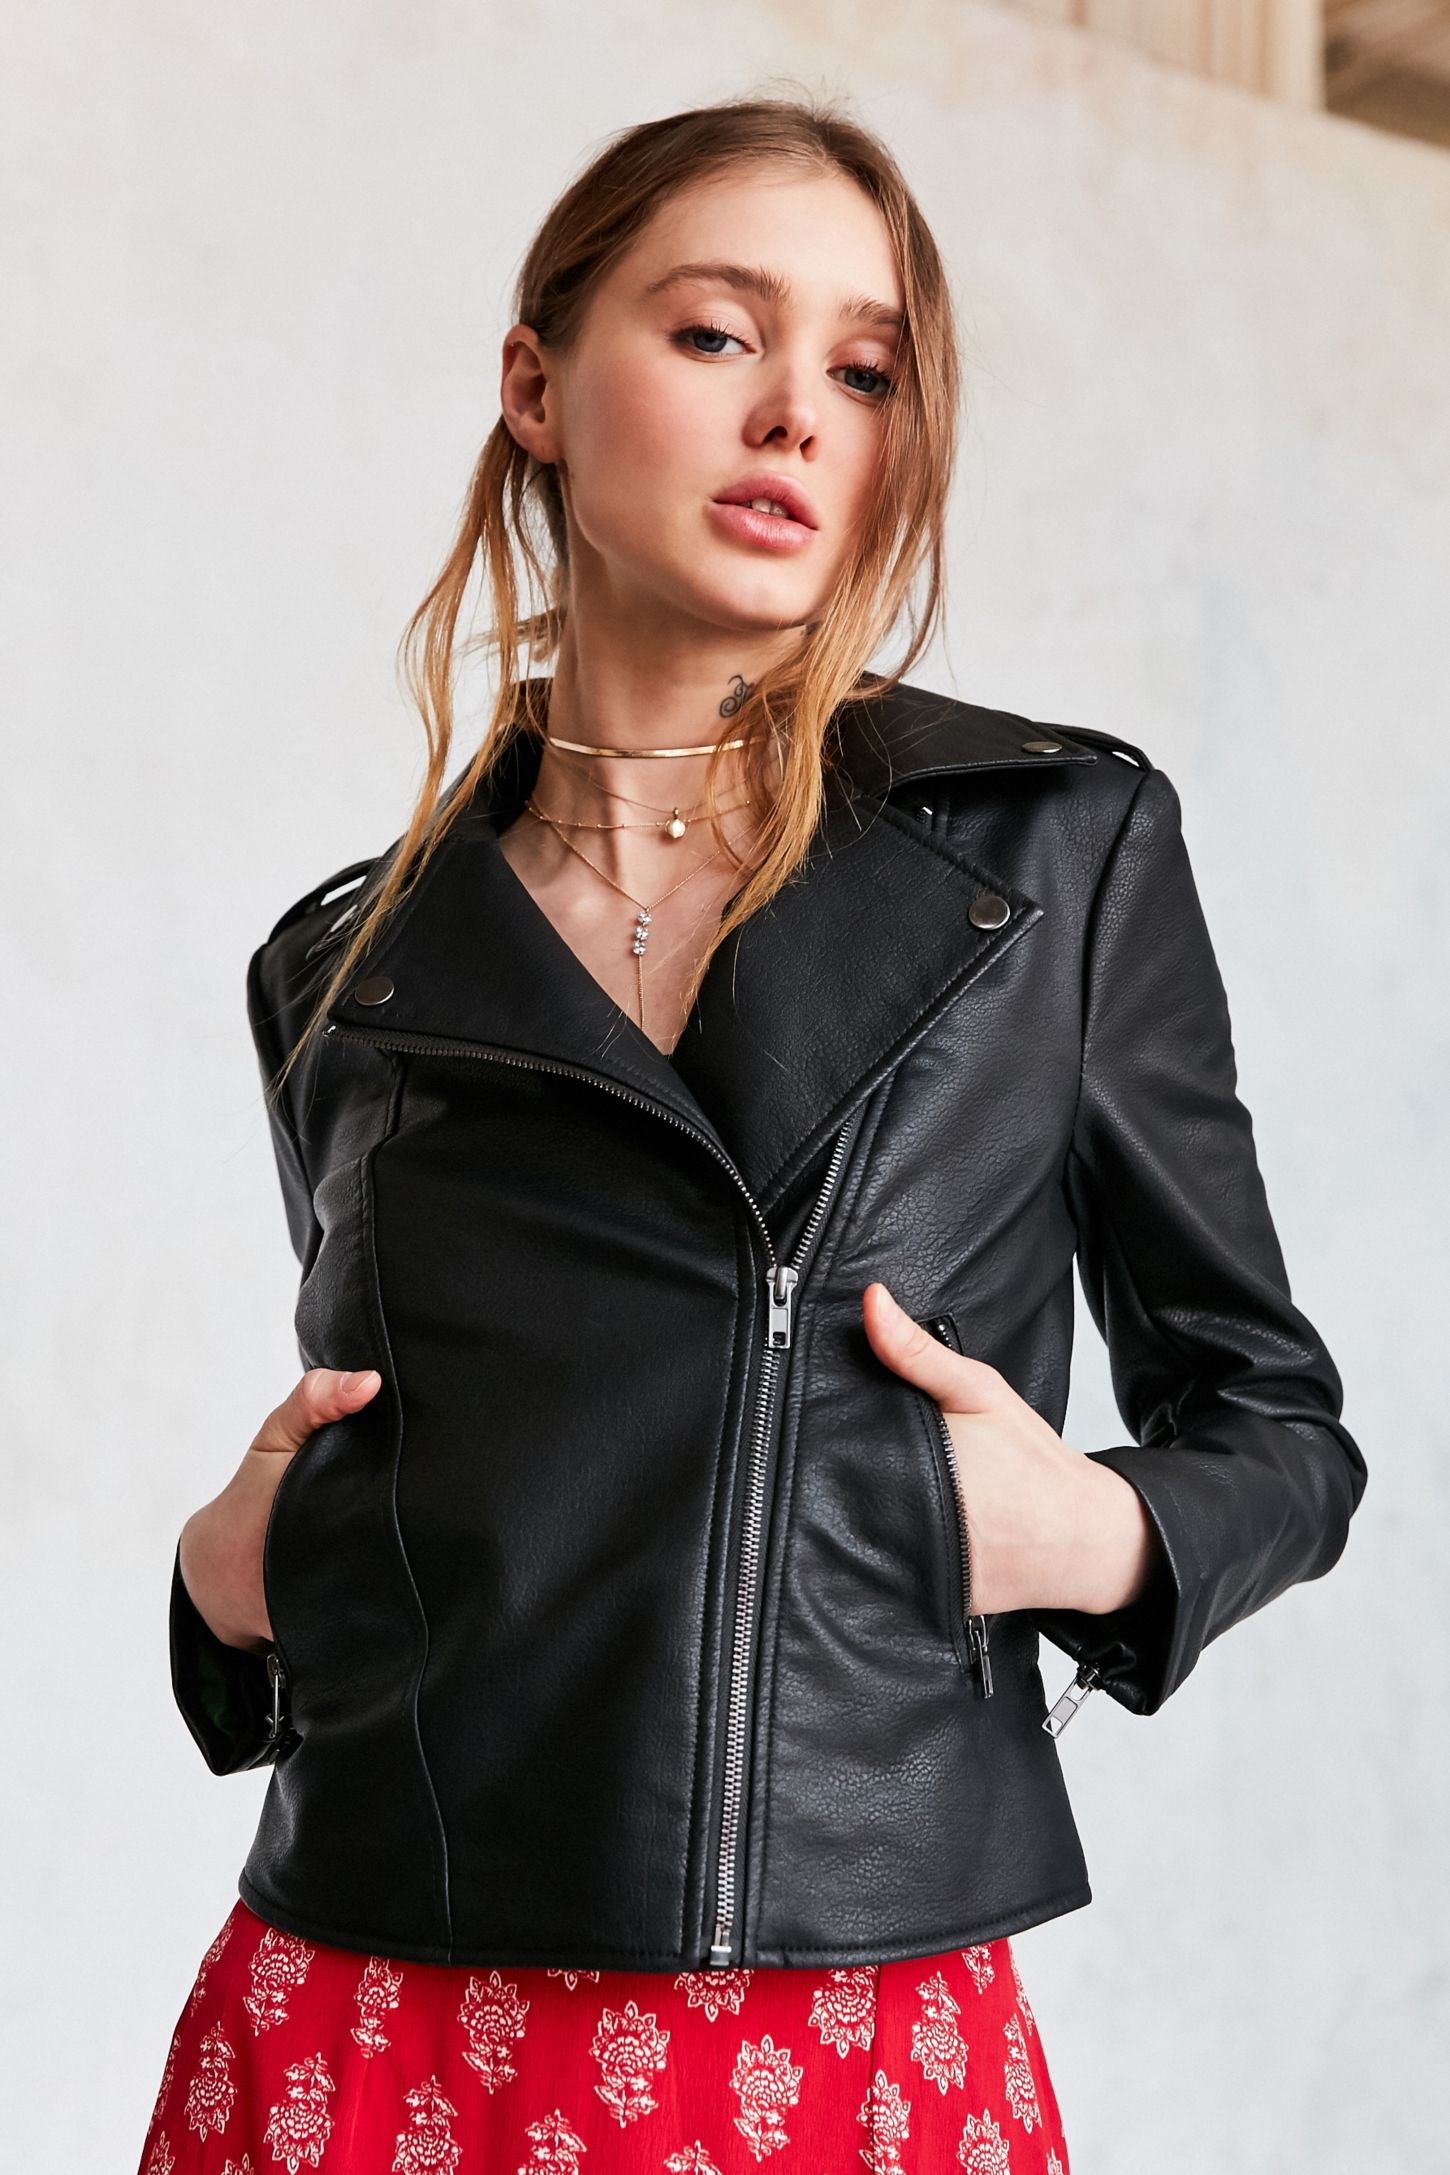 Leather jacket urban outfitters - Leather Jacket Urban Outfitters 10